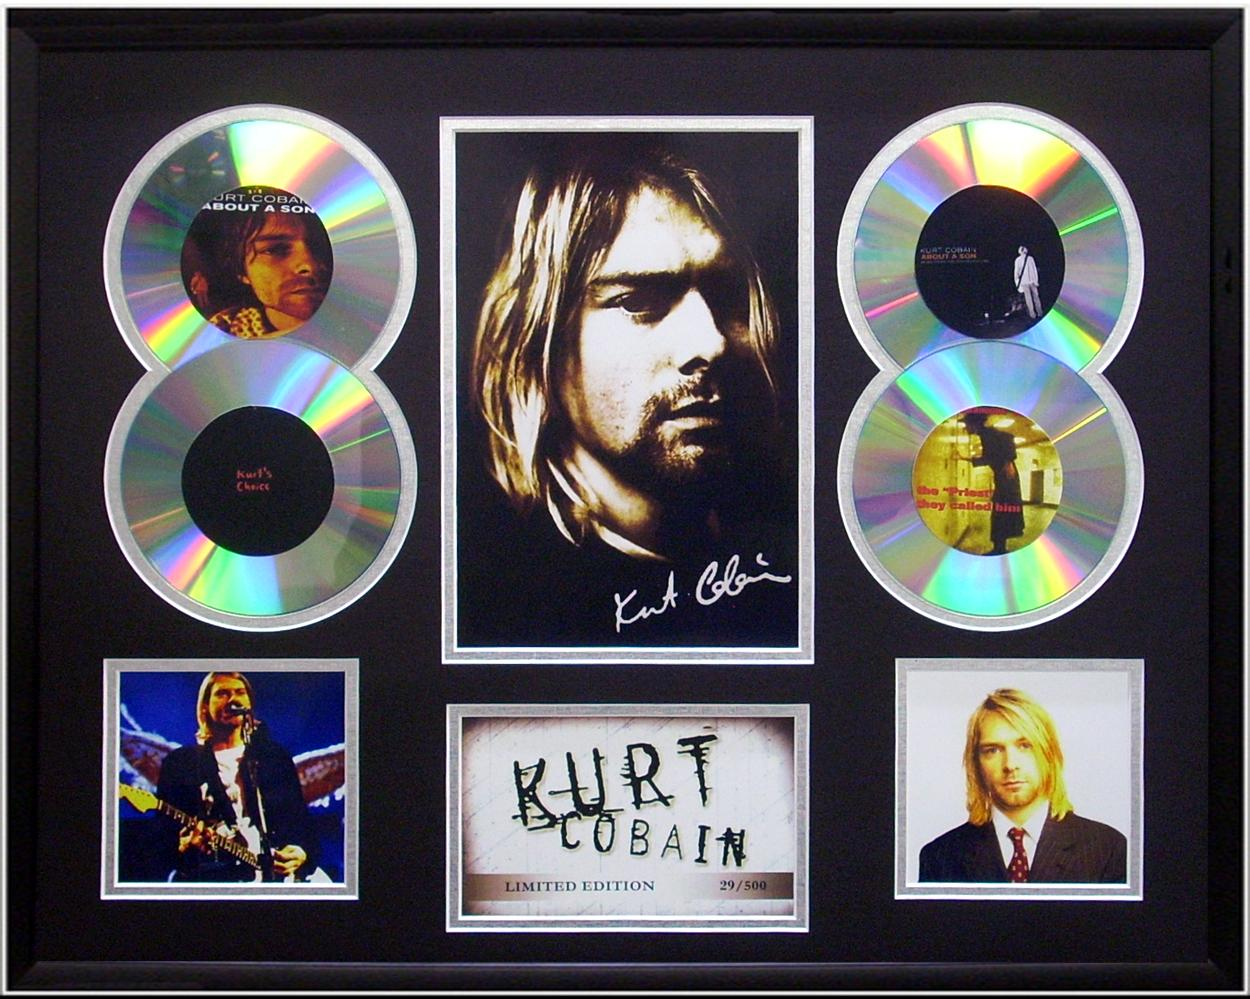 Kurt-Cobain-framed-Limited-Ed-signed-CD-Photo-Display